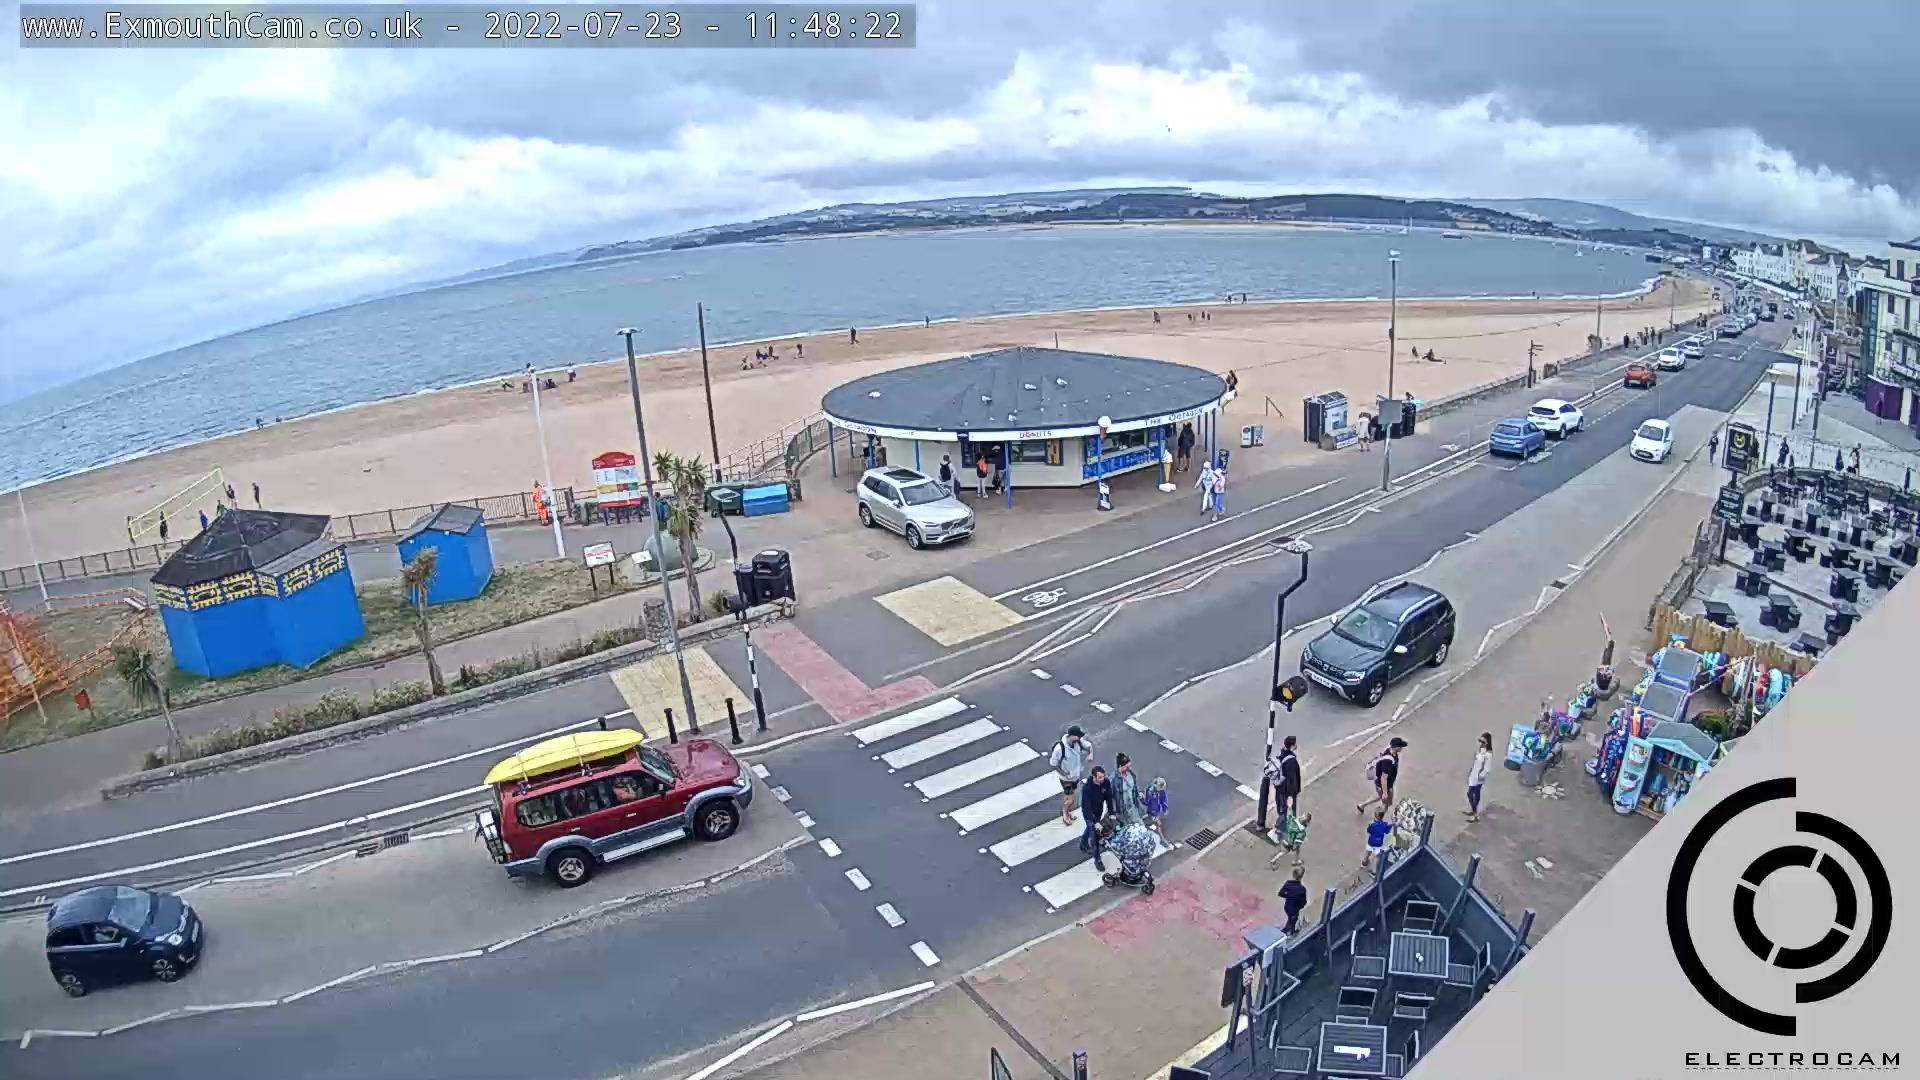 Seafront Webcam